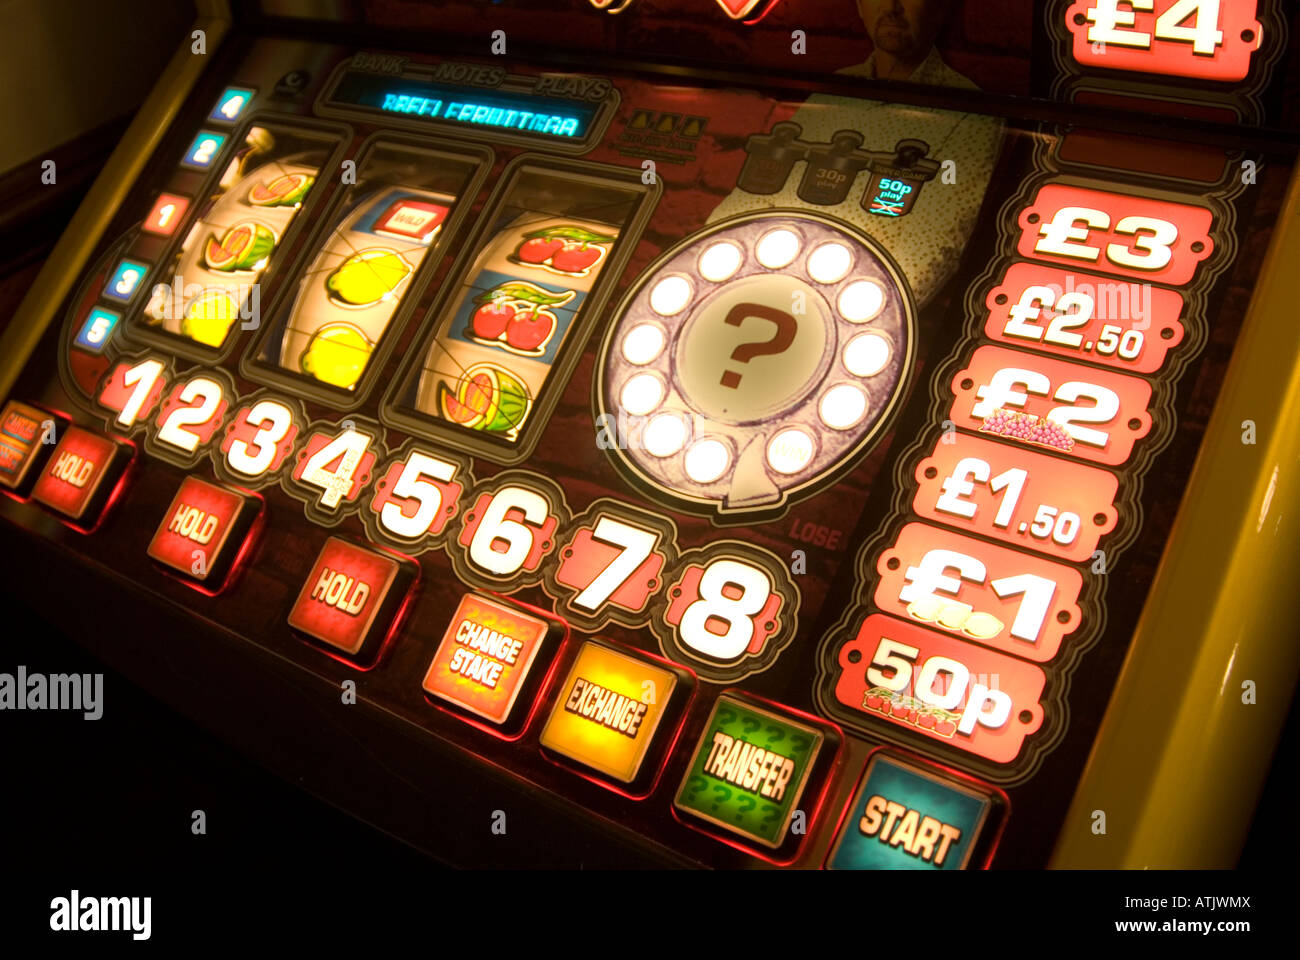 Uk fruit slots casinos hypnosis treatment gambling addiction